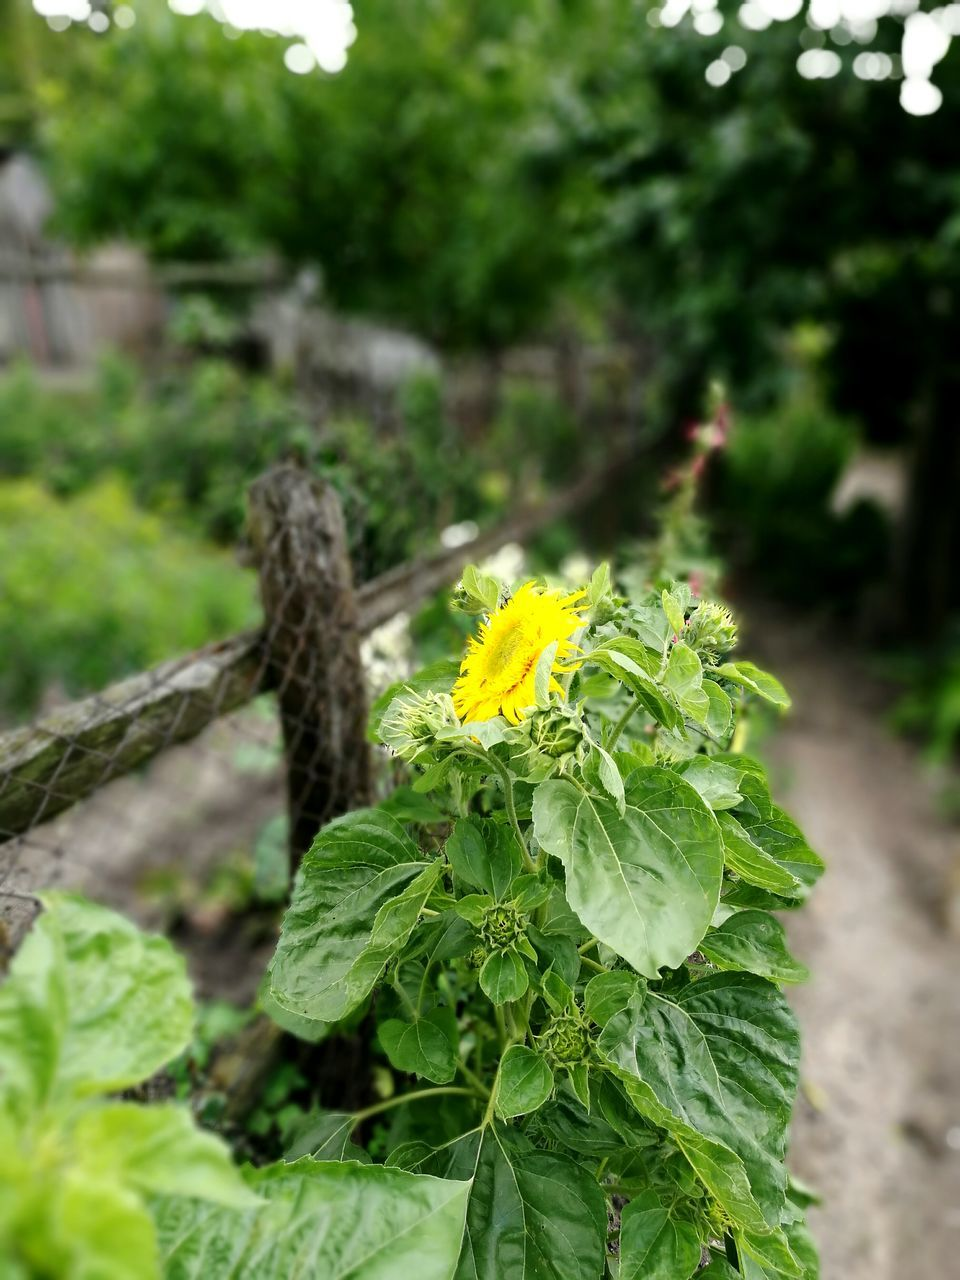 flower, growth, green color, nature, focus on foreground, plant, beauty in nature, freshness, fragility, day, no people, outdoors, close-up, leaf, yellow, flower head, tree, blooming